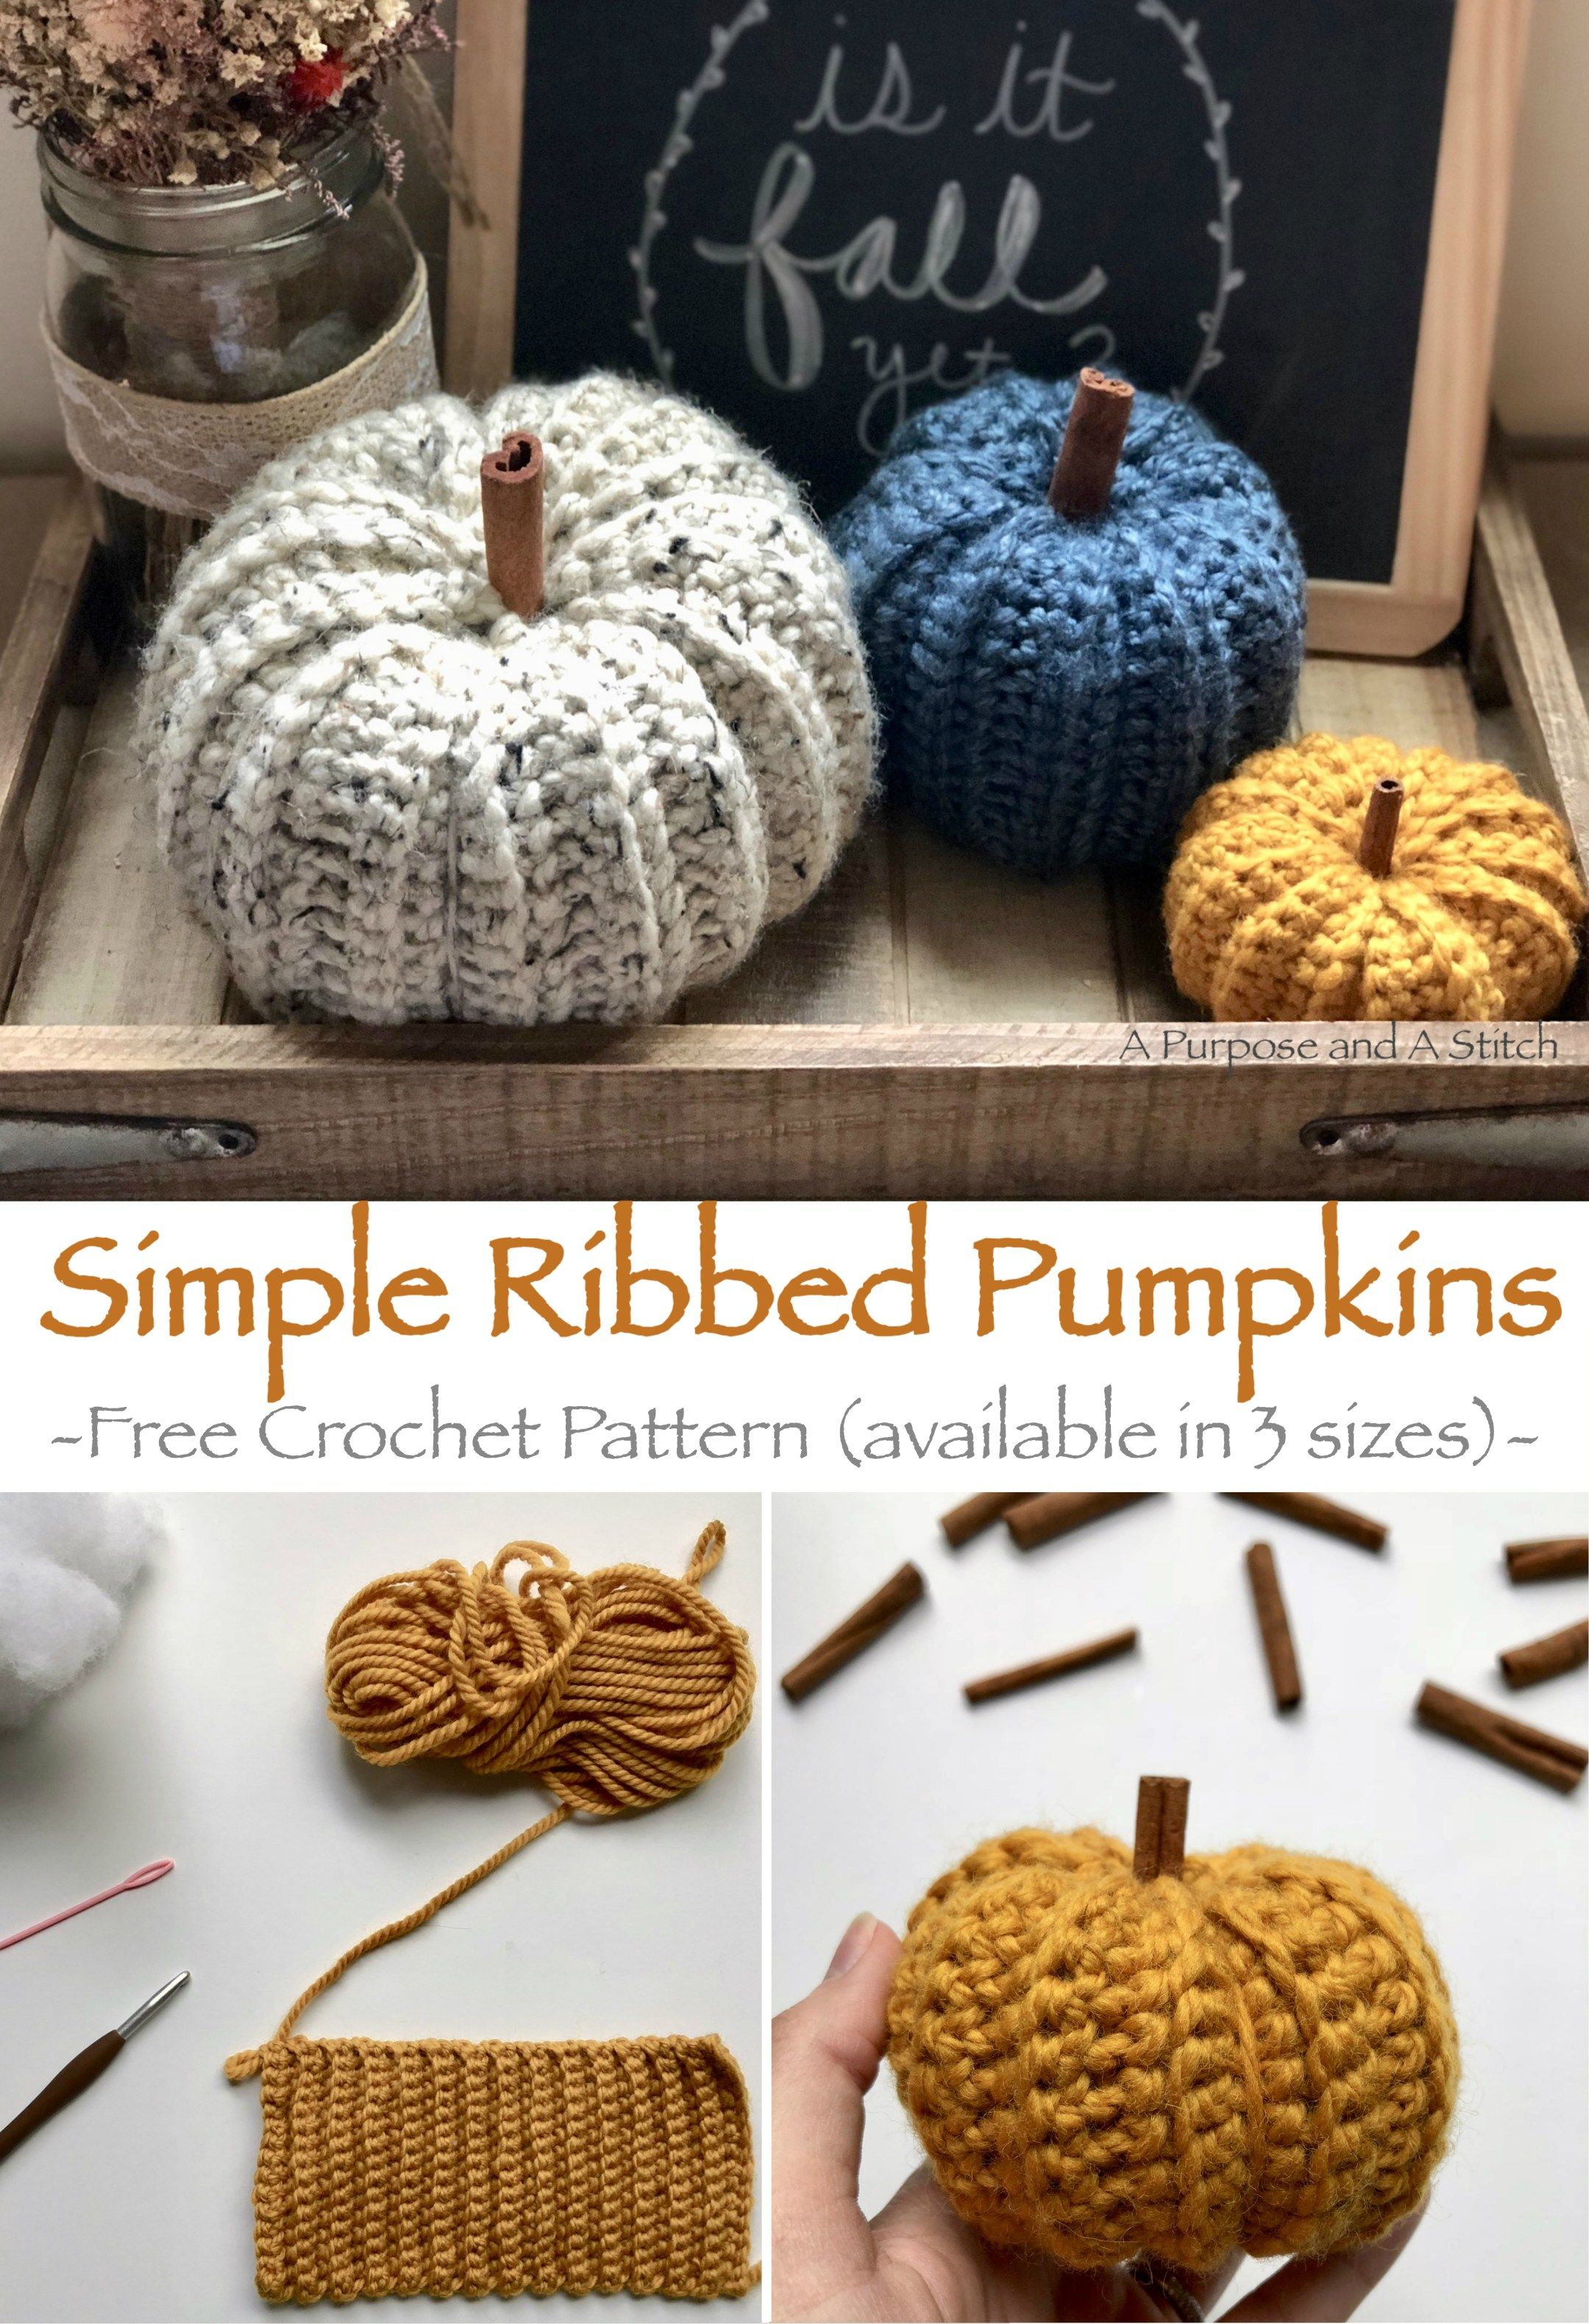 Simple Ribbed Pumpkins A Purpose And A Stitch Patterns